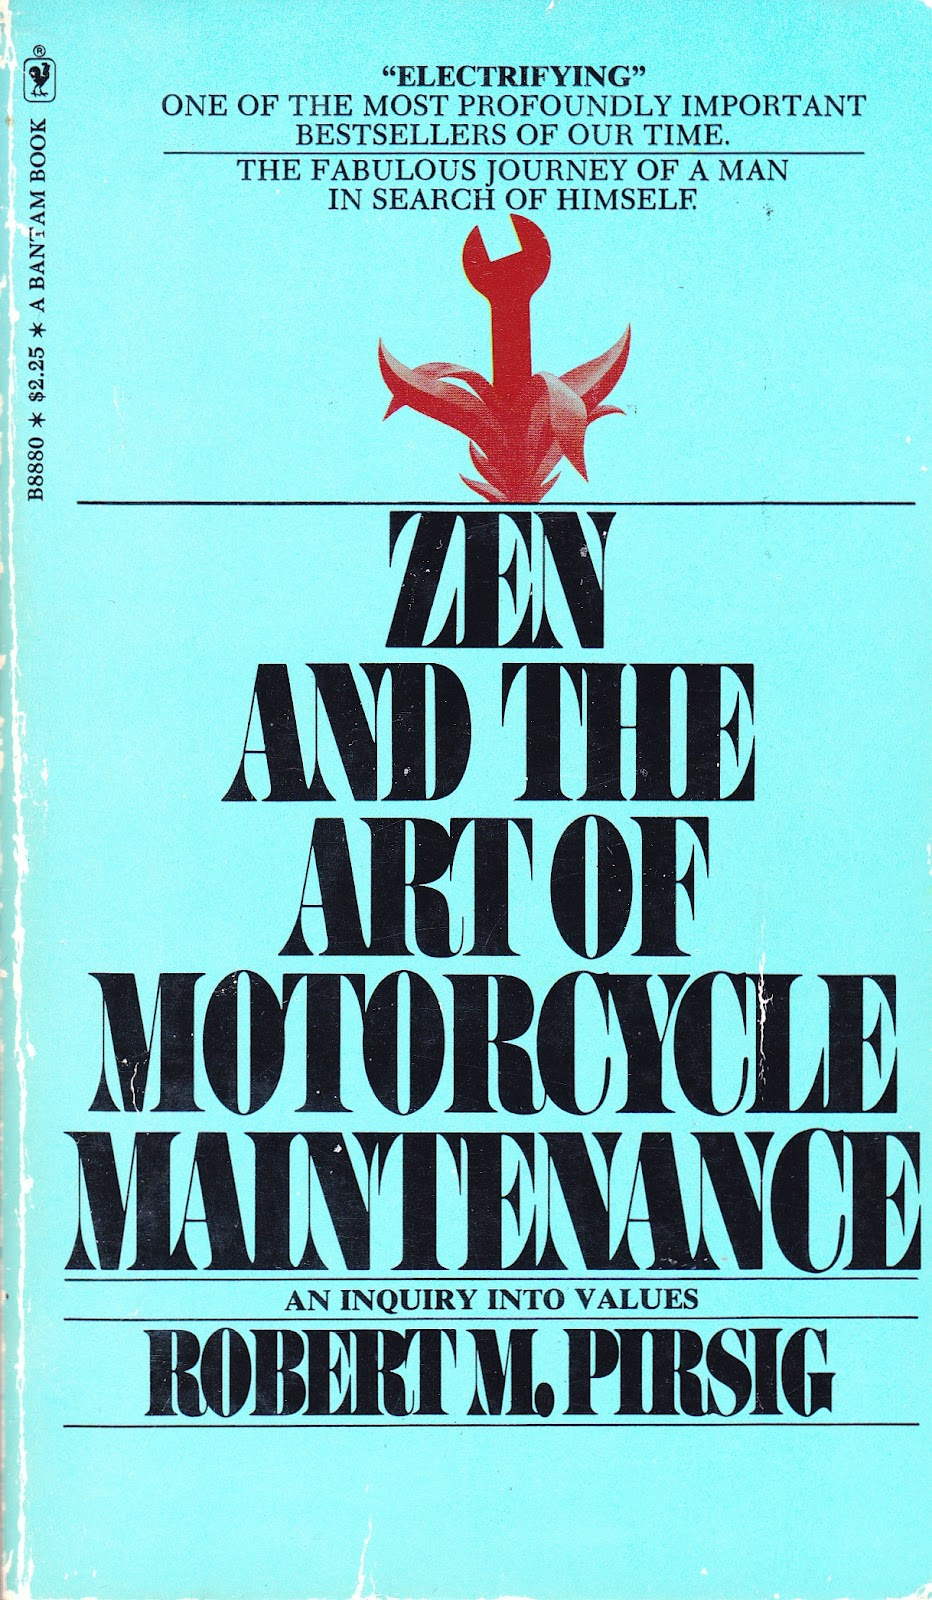 The zen epub free and download motorcycle art maintenance of